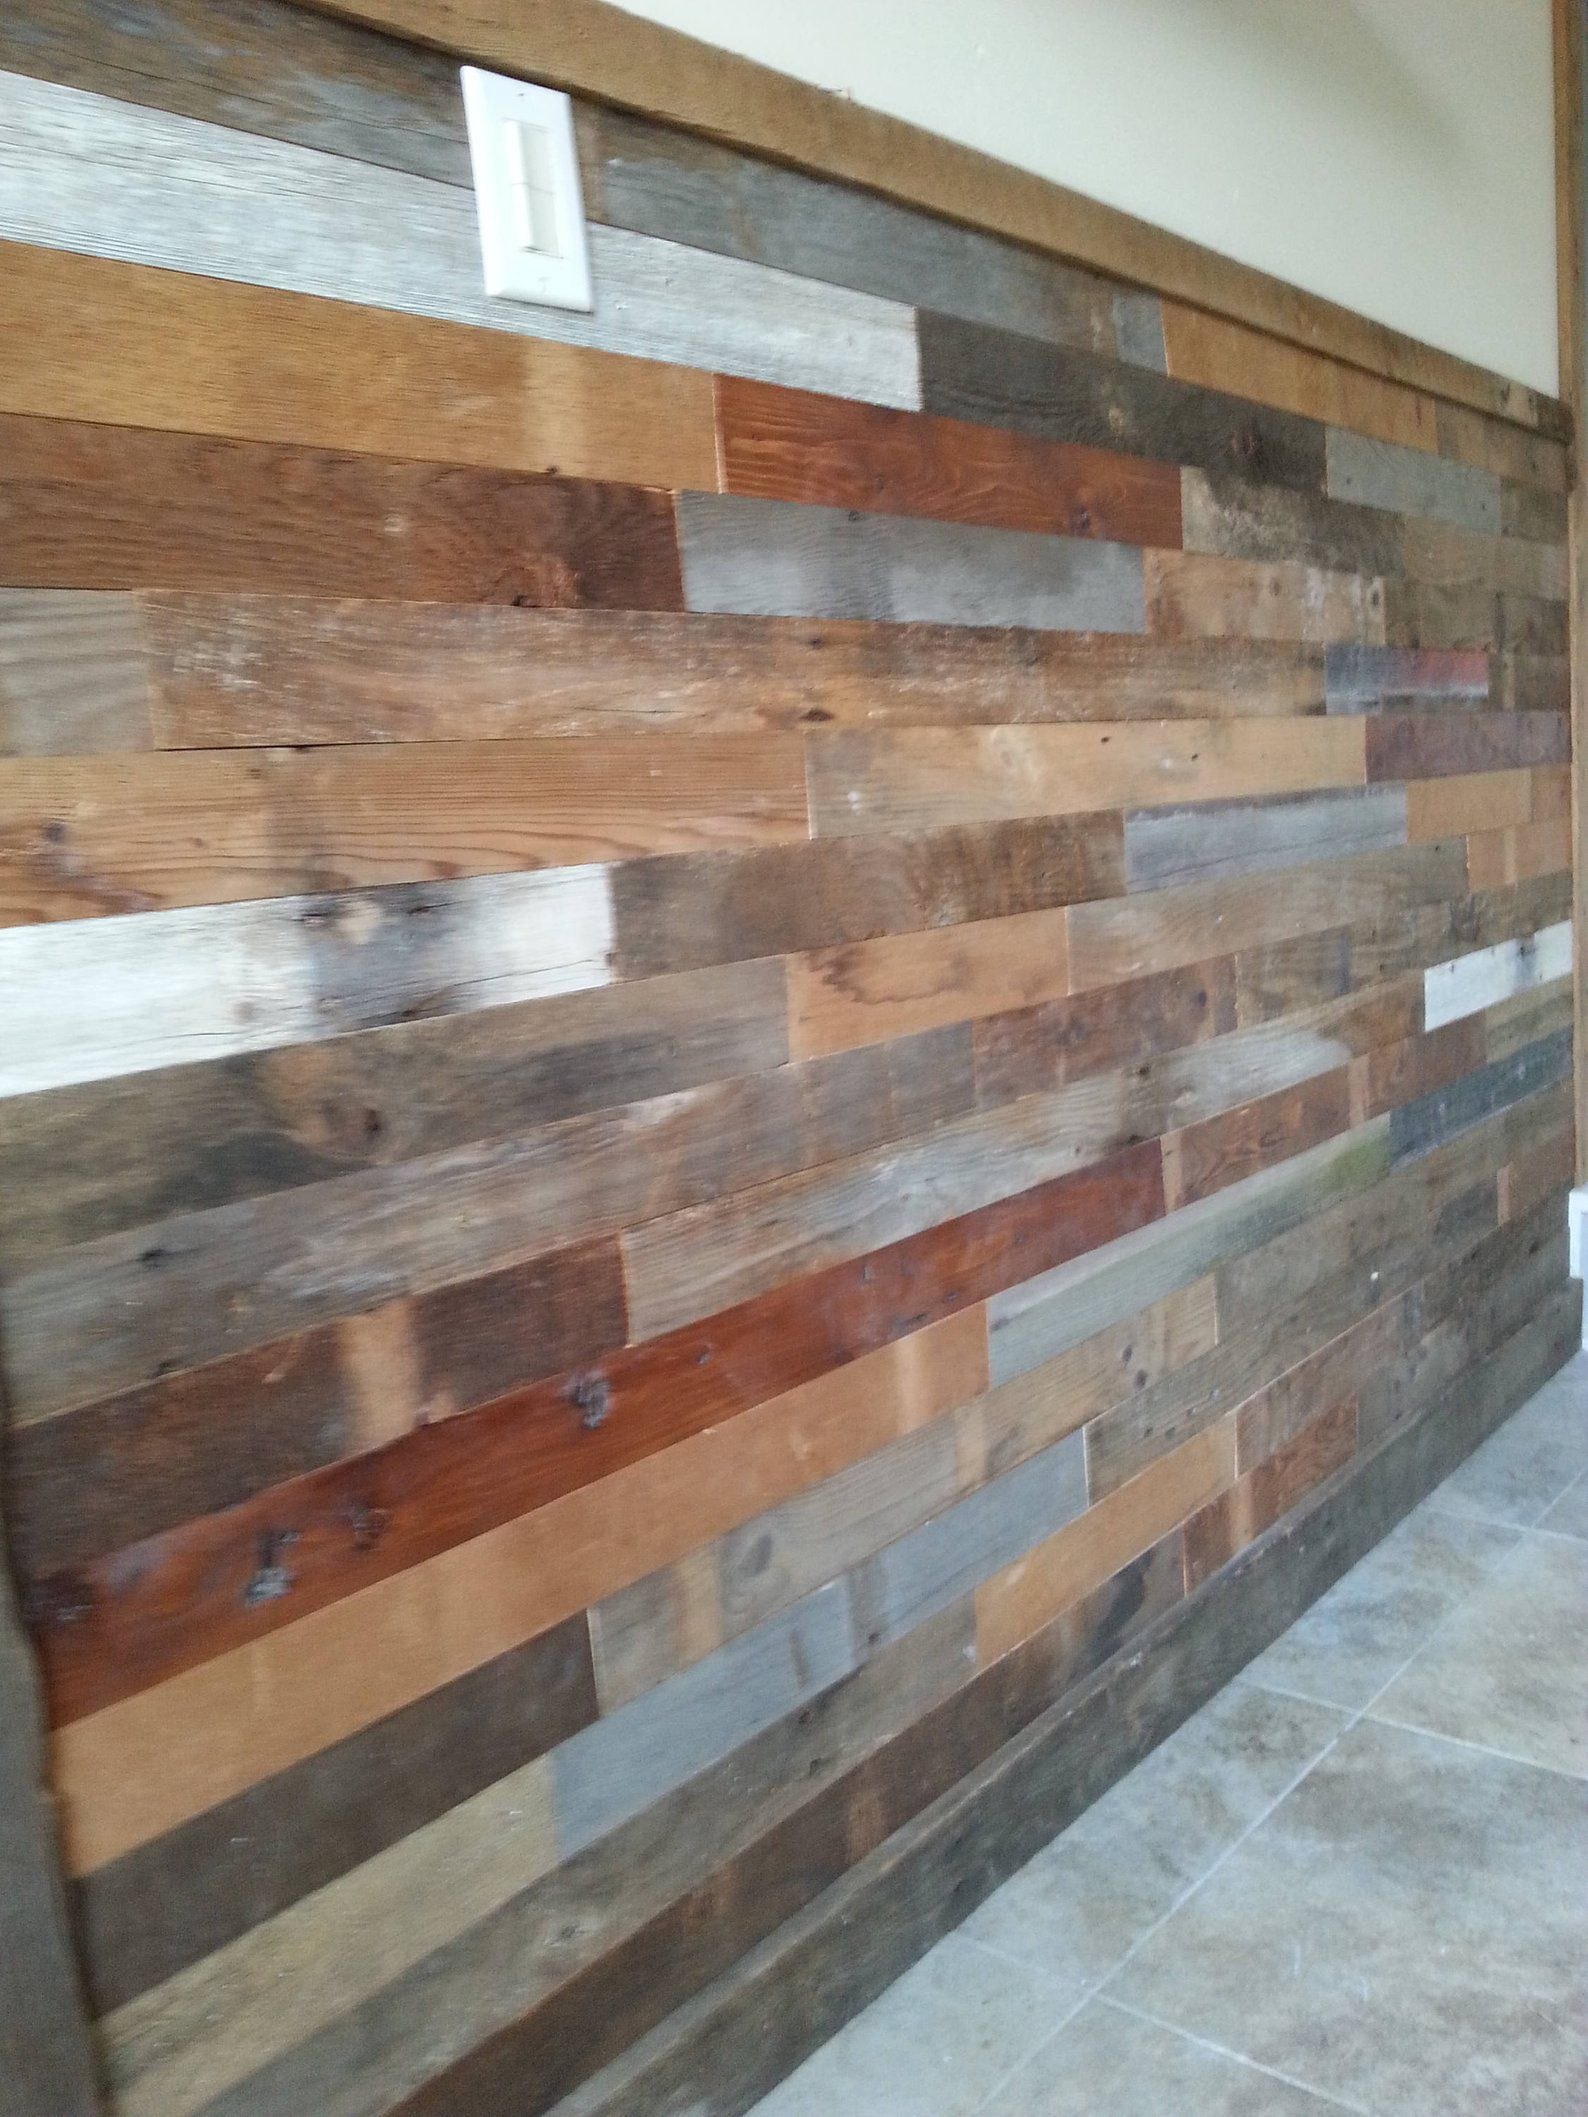 Barnwood Shiplap Easy Install Wainscoting Reclaimed Wood Etsy Rustic Wood Walls Barn Wood Old Barn Wood